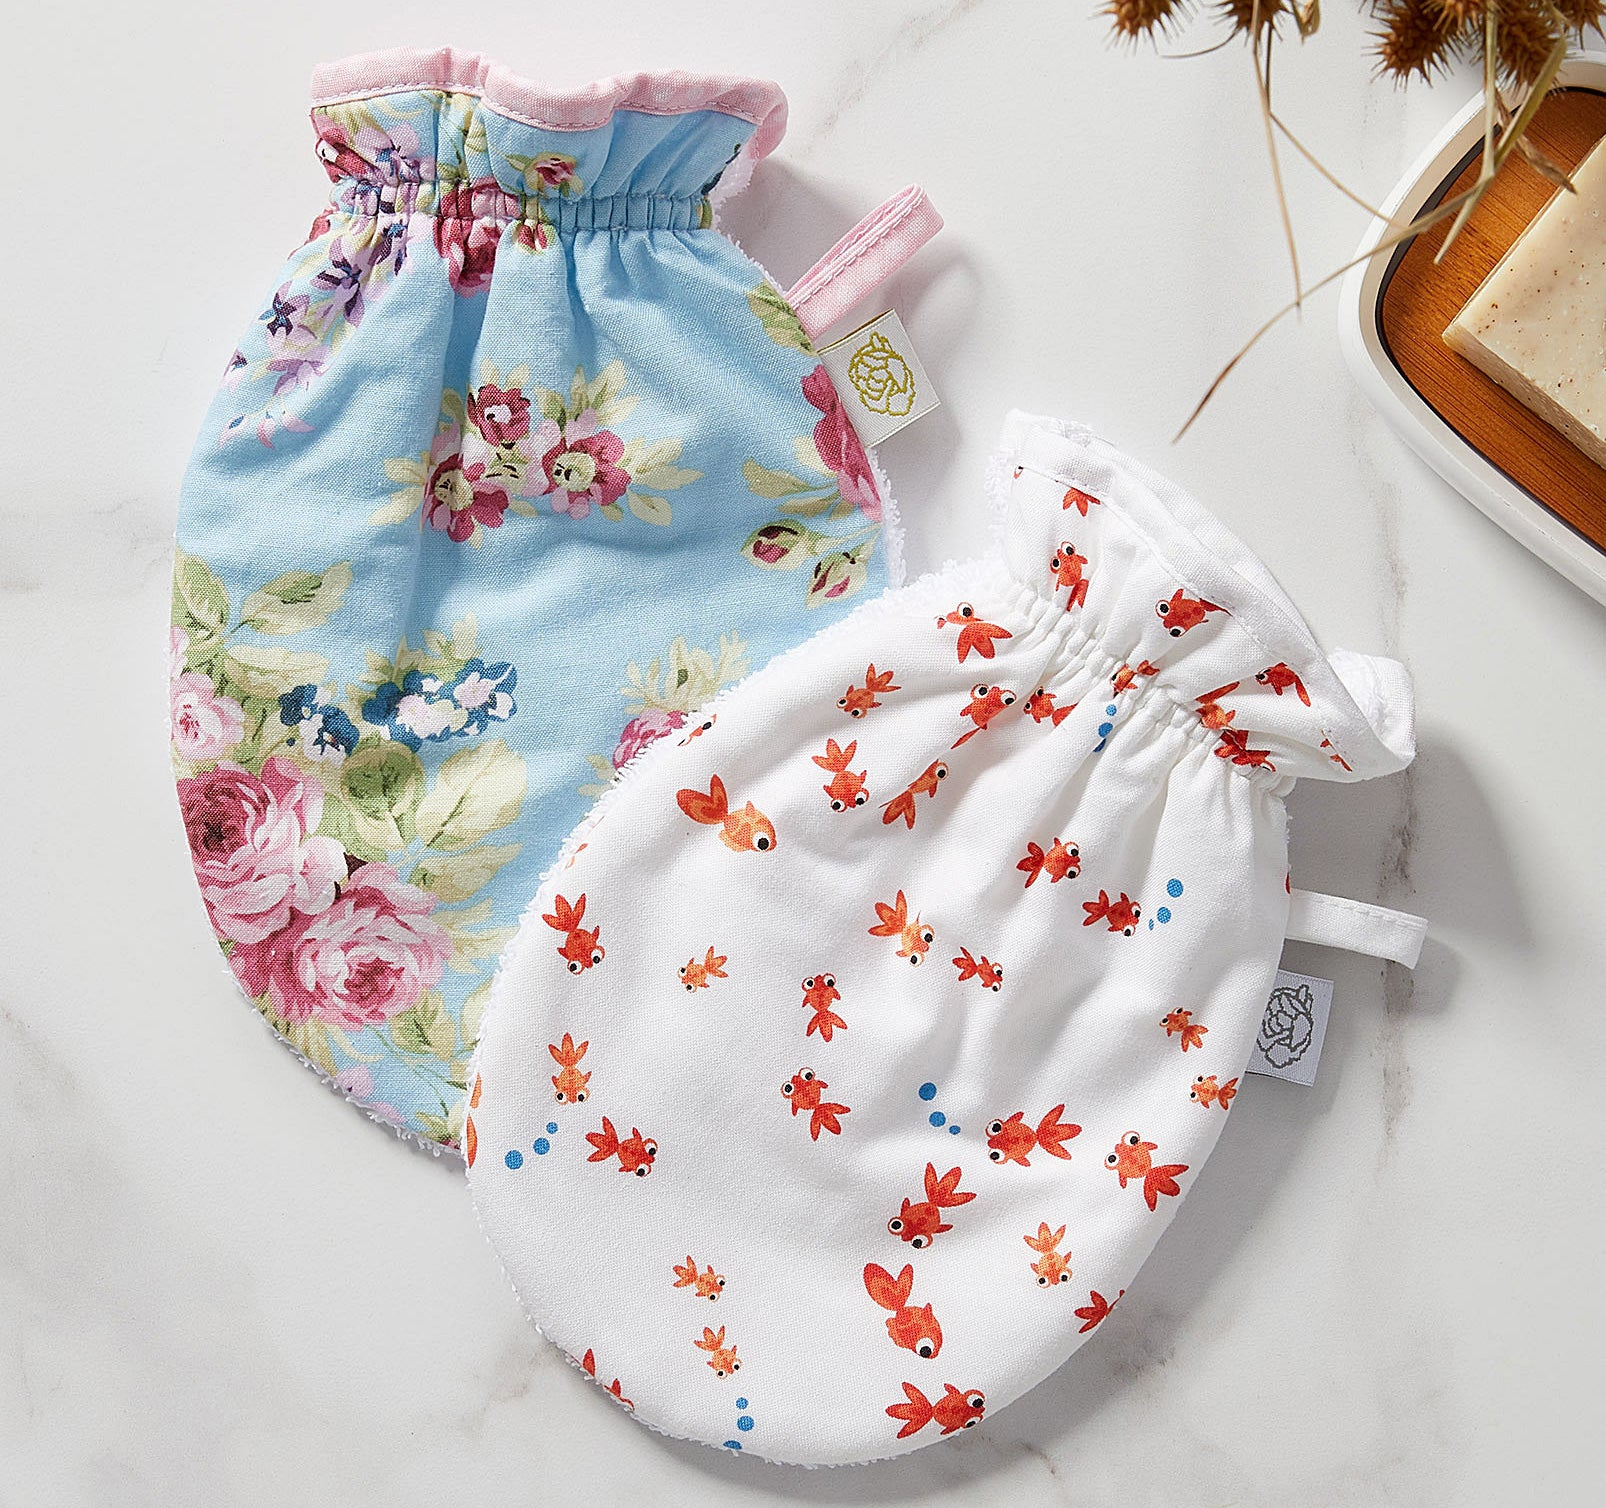 Two soft cloth bath mittens on a plain background